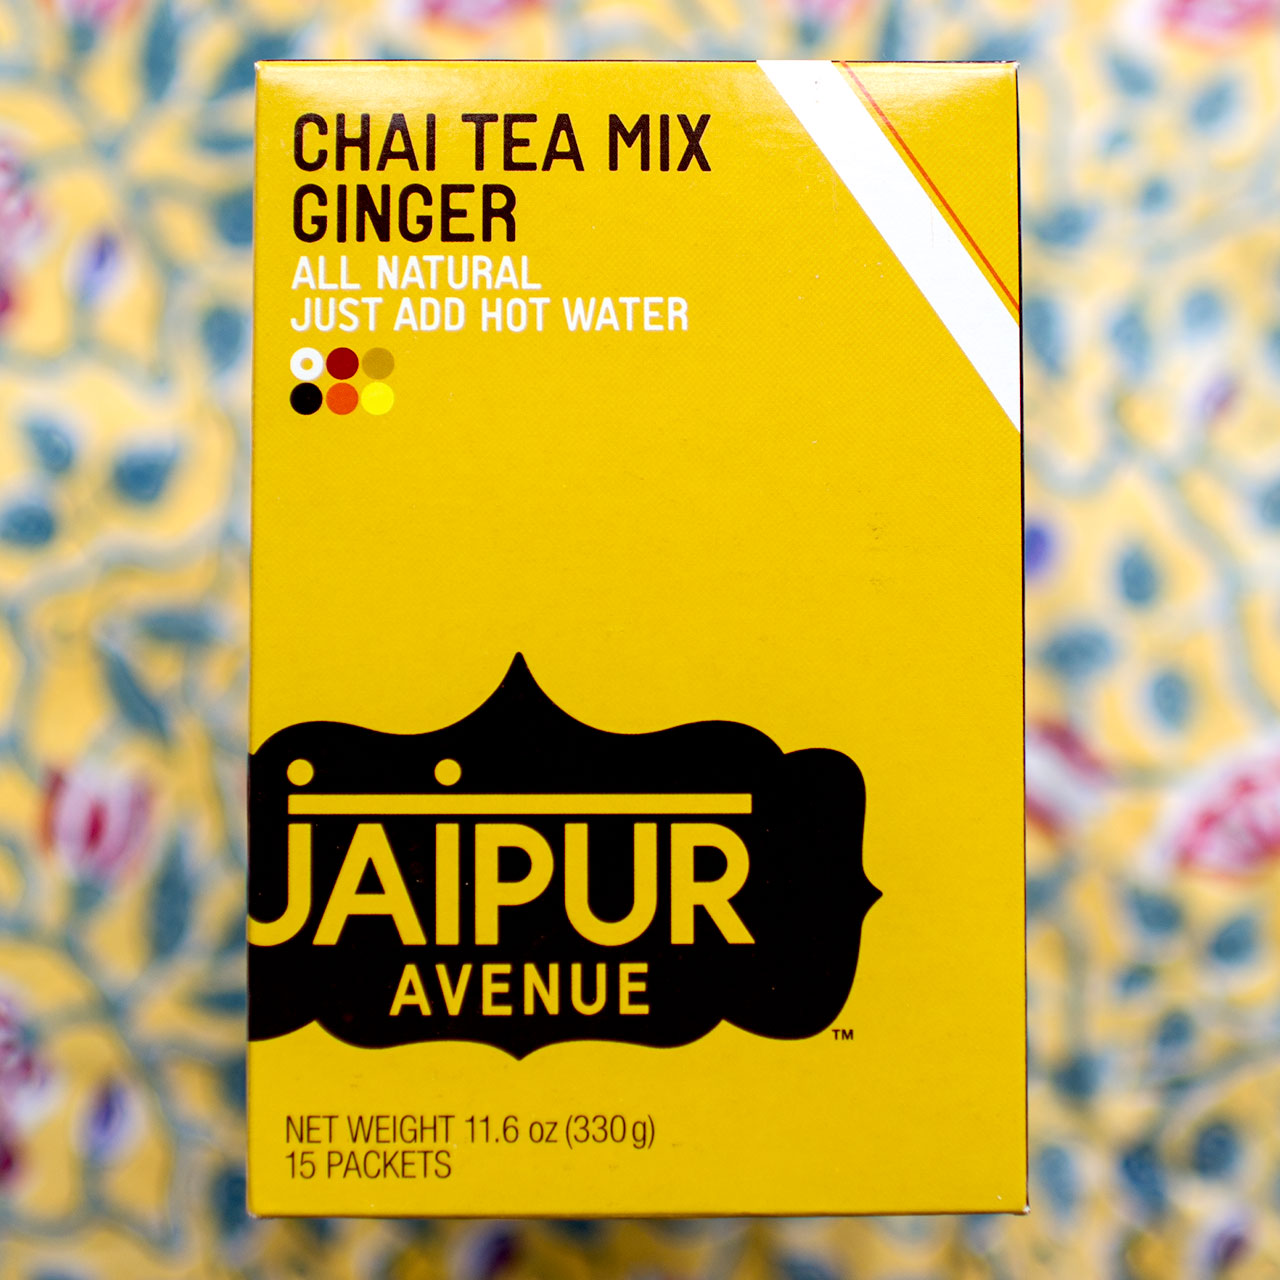 Jaipur Avenue Ginger Chai Tea Mix